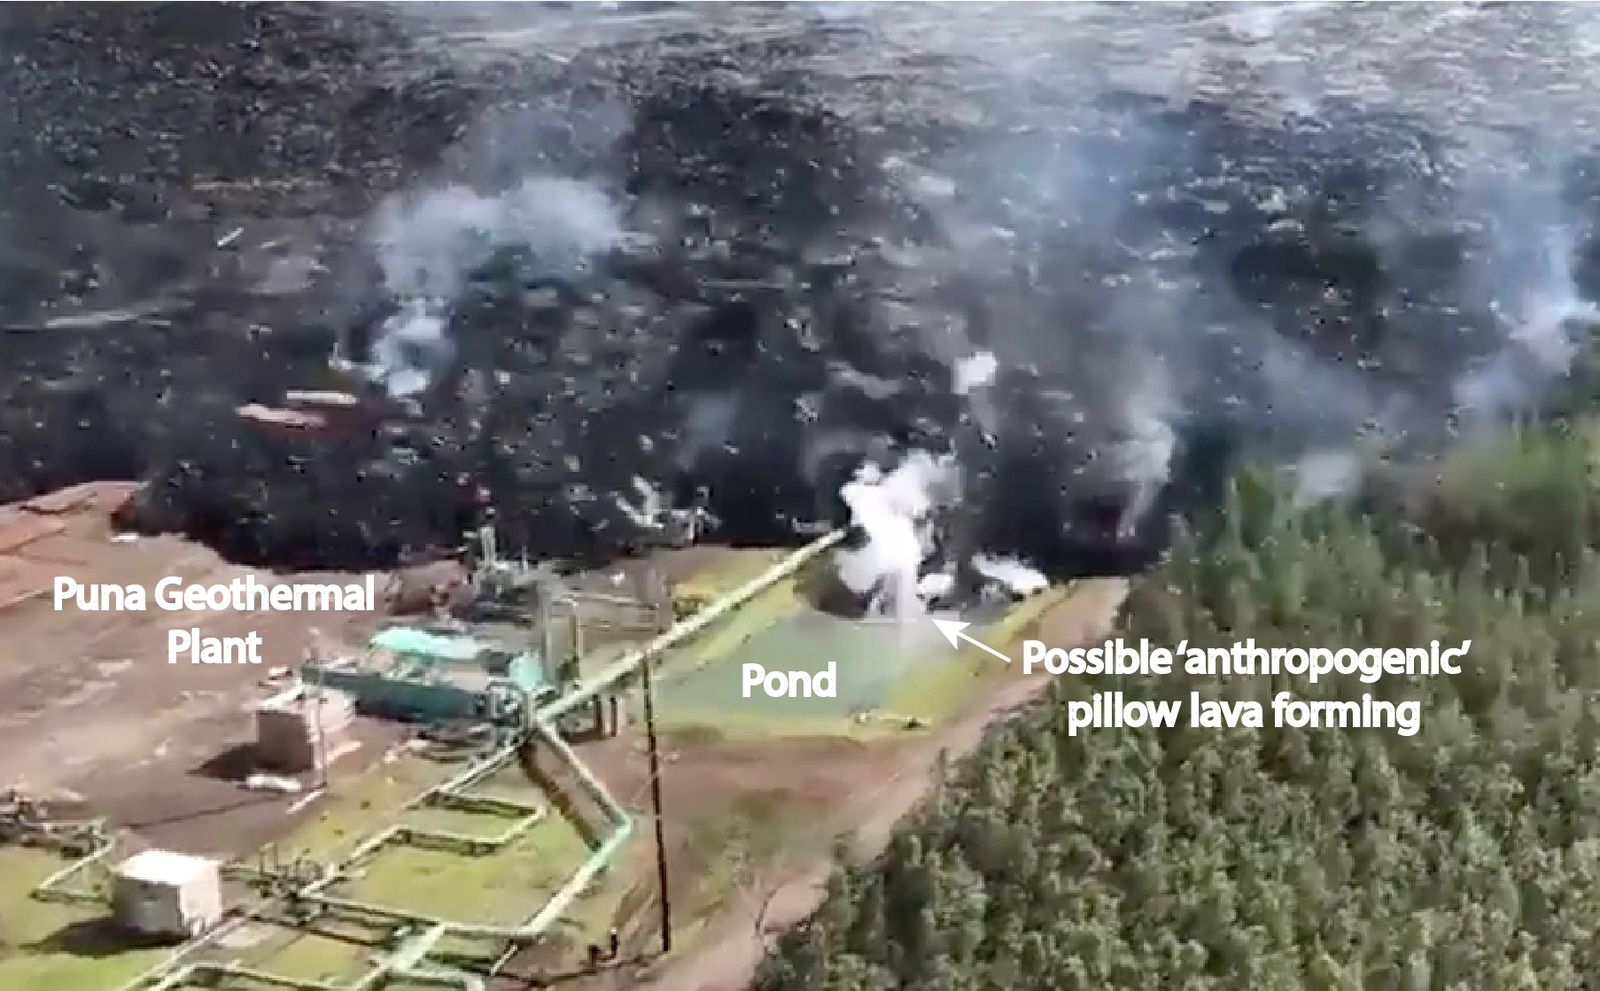 Kilauea East rift zone - 28.05.2018 - possible formation of anthropogenic Pillow lavas following the entry of lava into a water reservoir - Mileka Lincoln